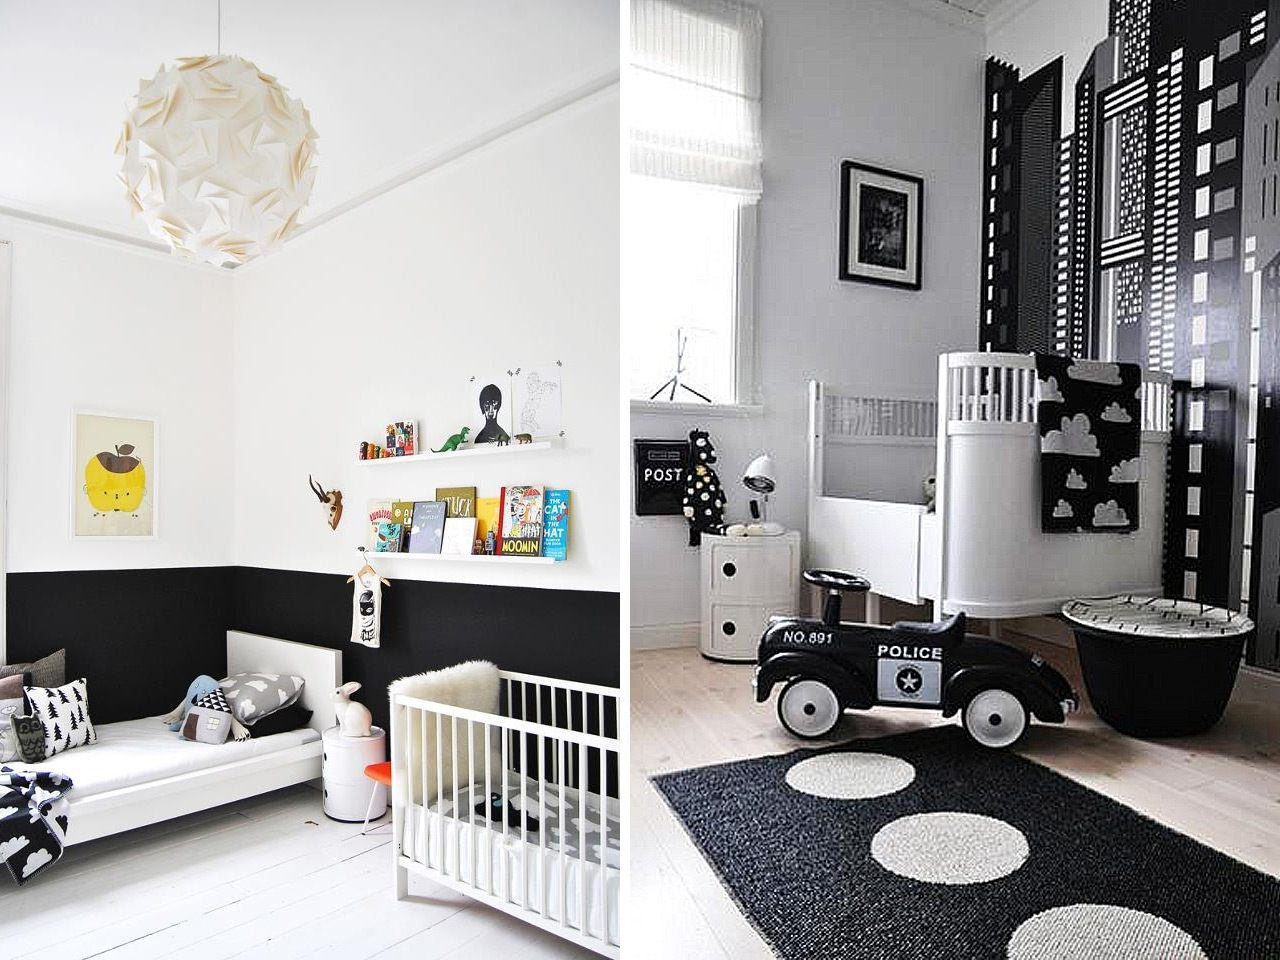 Ideas originales para decorar la habitaci n del bebe - Ideas de decoracion para habitaciones ...